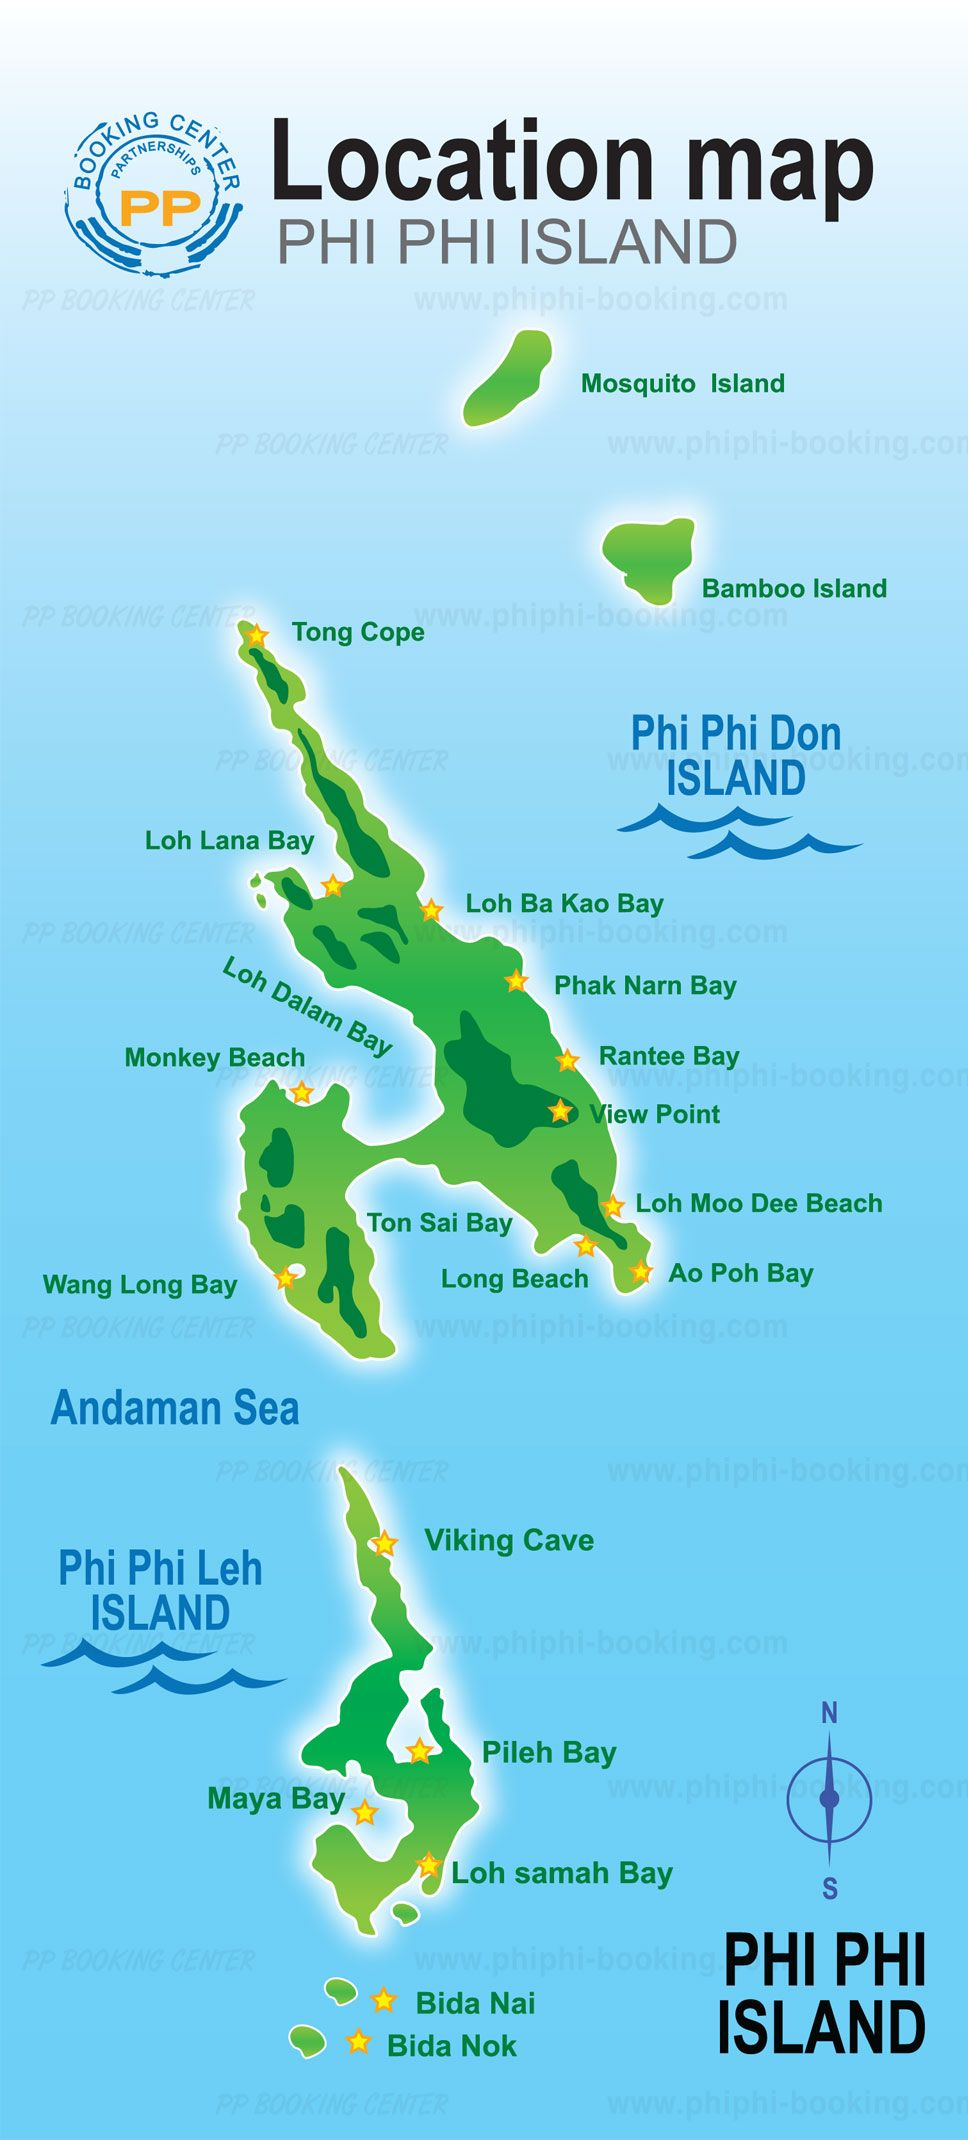 Krabi maps is a useful tool to discover the main travel destinations